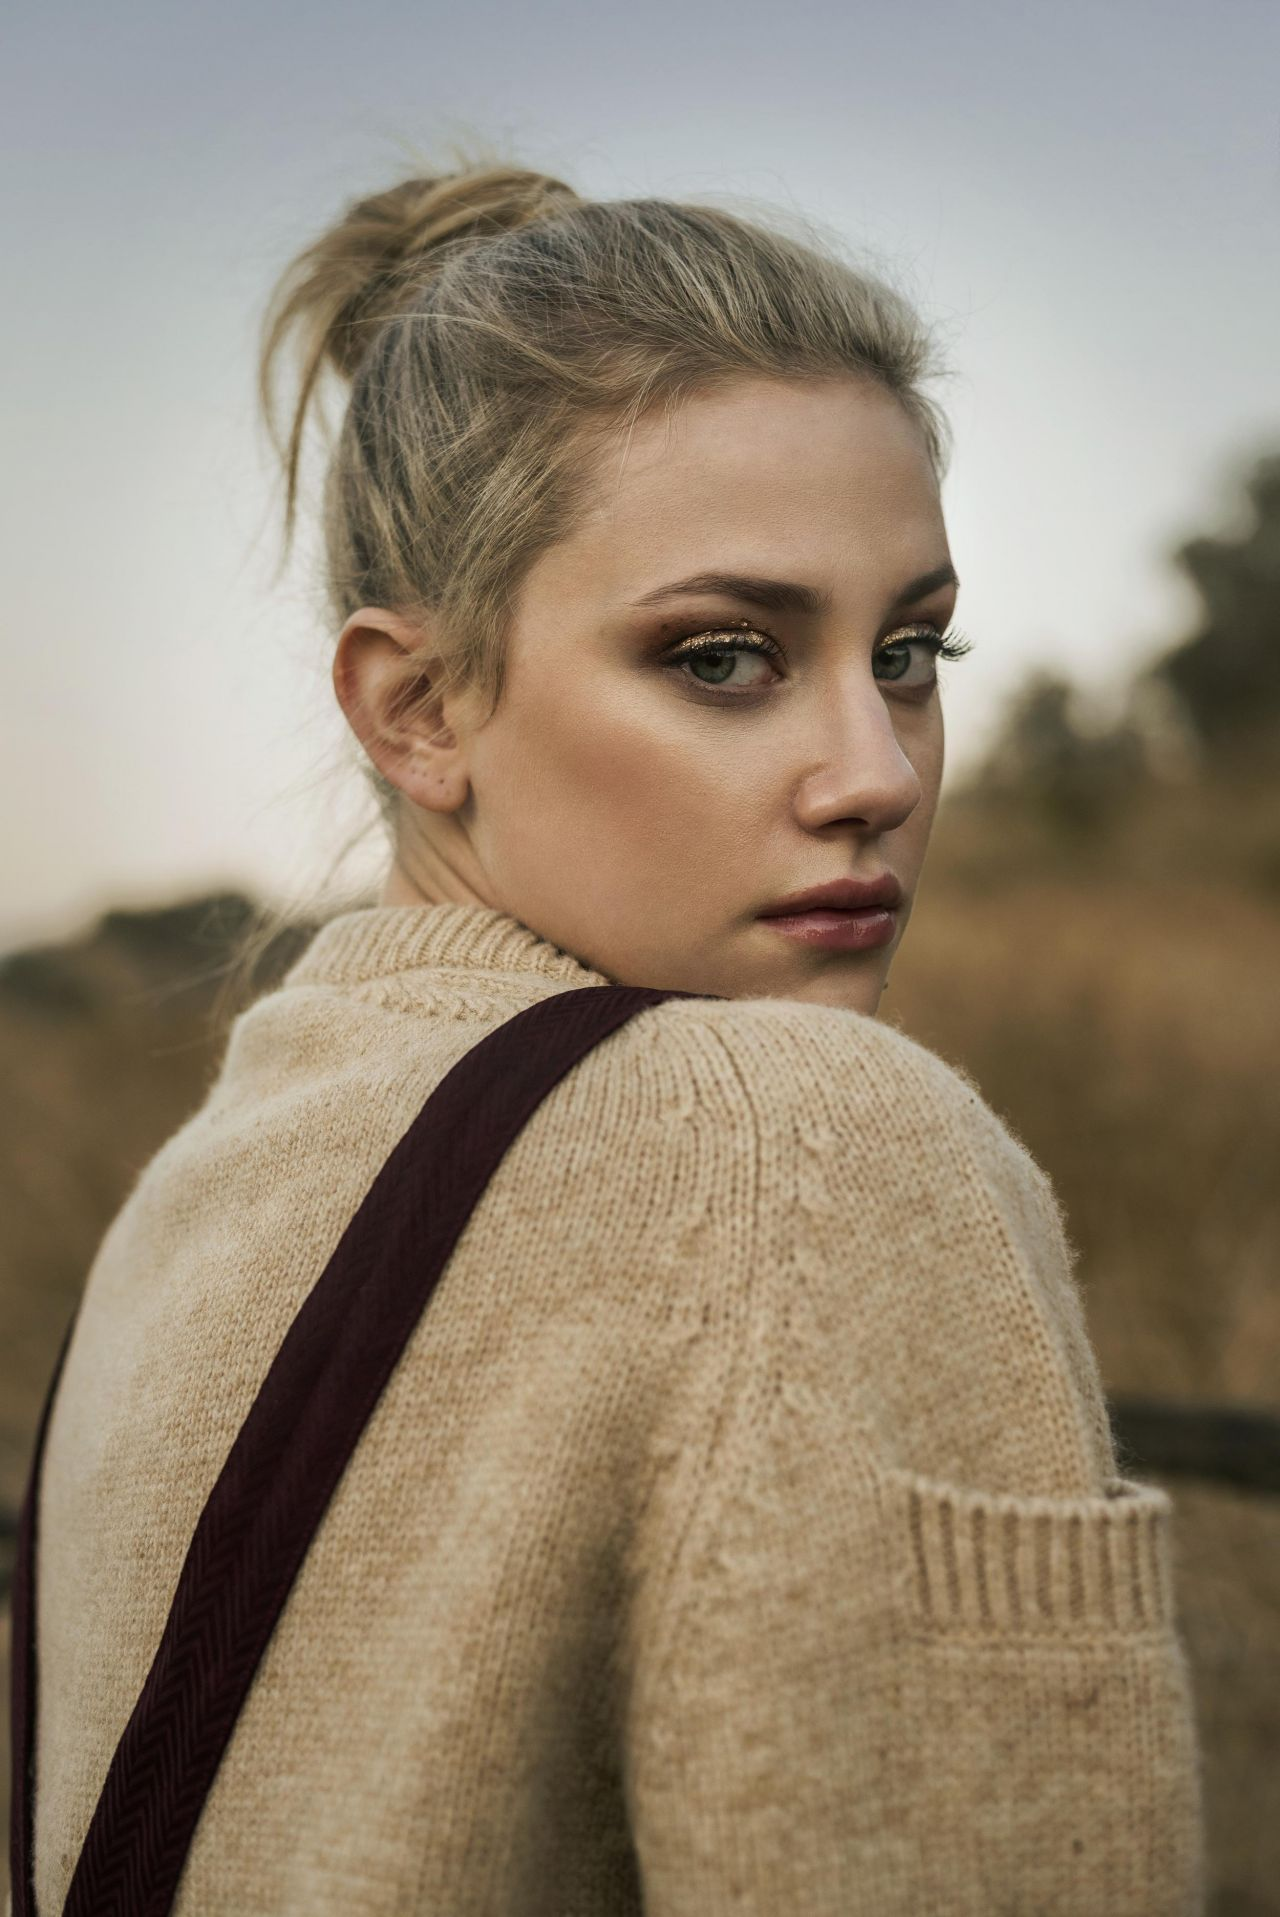 Lili Reinhart Photoshoot For Pulse Spikes Winter 2018